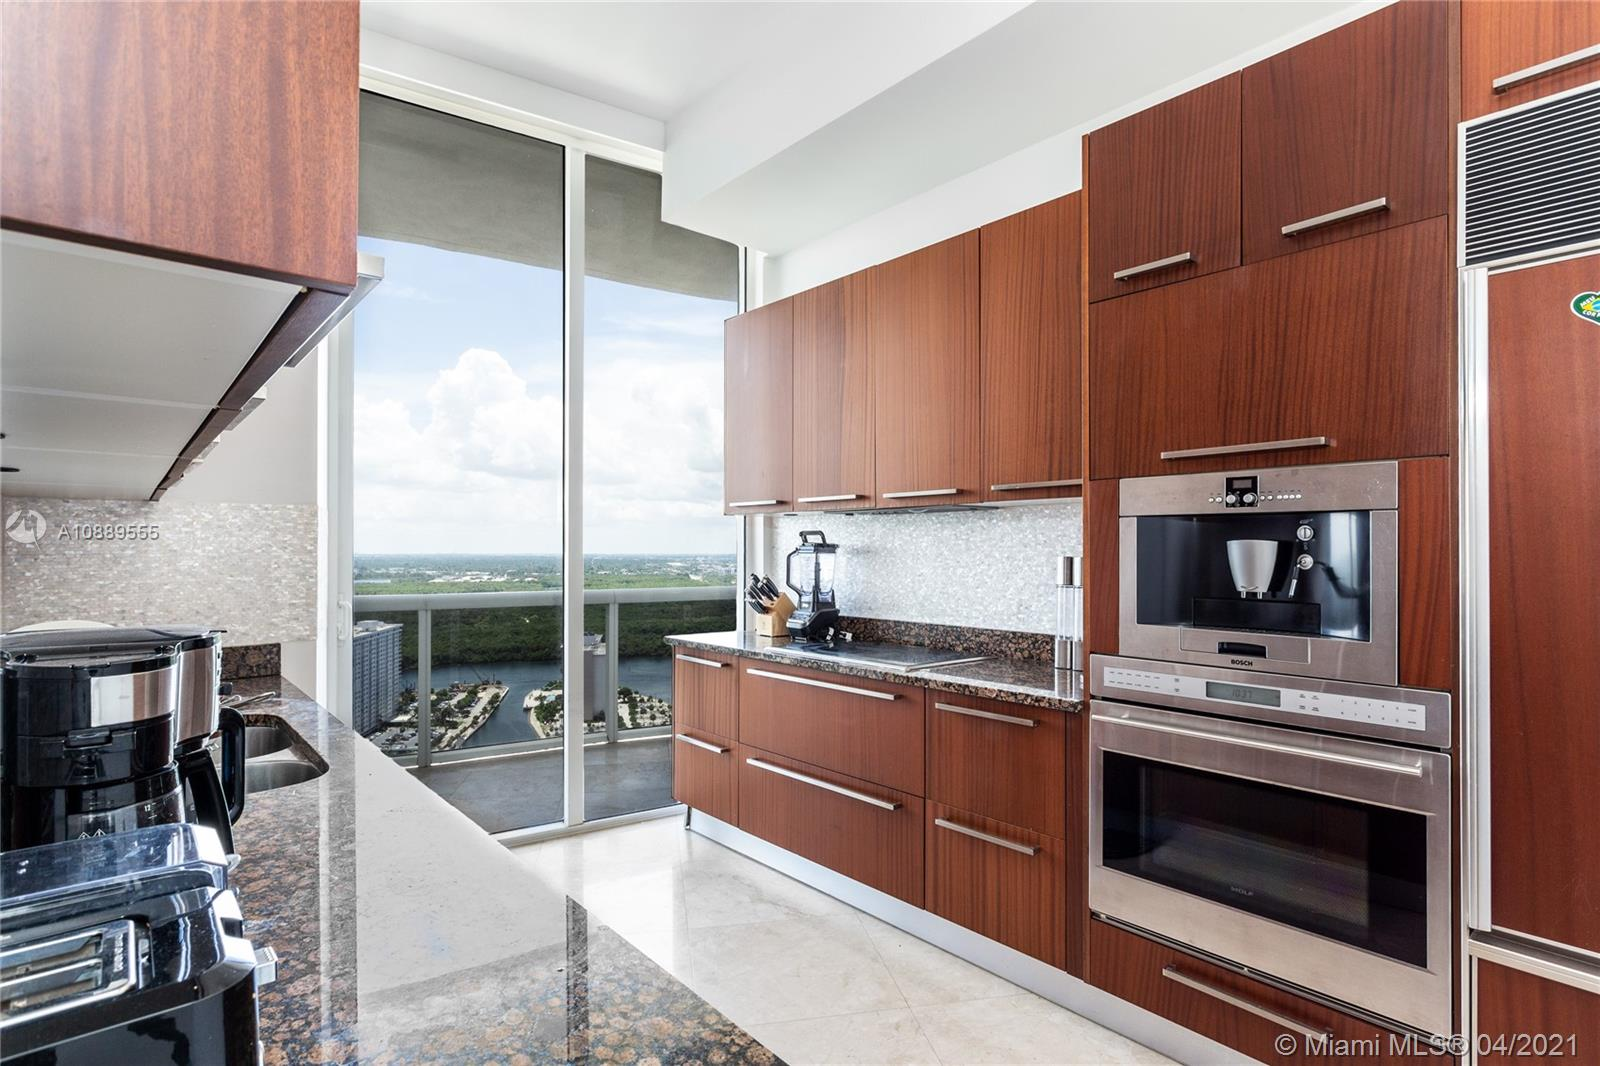 IMPECCABLE 34th FLOOR UNIT WITH BREATHTAKING INTRACOASTAL, DOWNTOWN MIAMI  AND BISCAYNE BAY VIEWS. SEMI PRIVATE ELEVATOR, MARBLE FLOOR THRU-OUT, GOURMET KITCHEN WITH SUBZERO, WOLF APPLIANCES. AMENITIES INCLUDE BILLIARDS ROOM, CLUB ROOM, POOL, SPA, FITNESS FACILITY, RECREATIONAL DECK, RESTAURANT ON THE BEACH. THIS UNIT FEATURES 10' CEILINGS. THE TRUMP HAS FULL SERVICE AND 5 STAR AMENITIES, BEACH SERVICE,  2 POOLS, AND MUCH MORE!